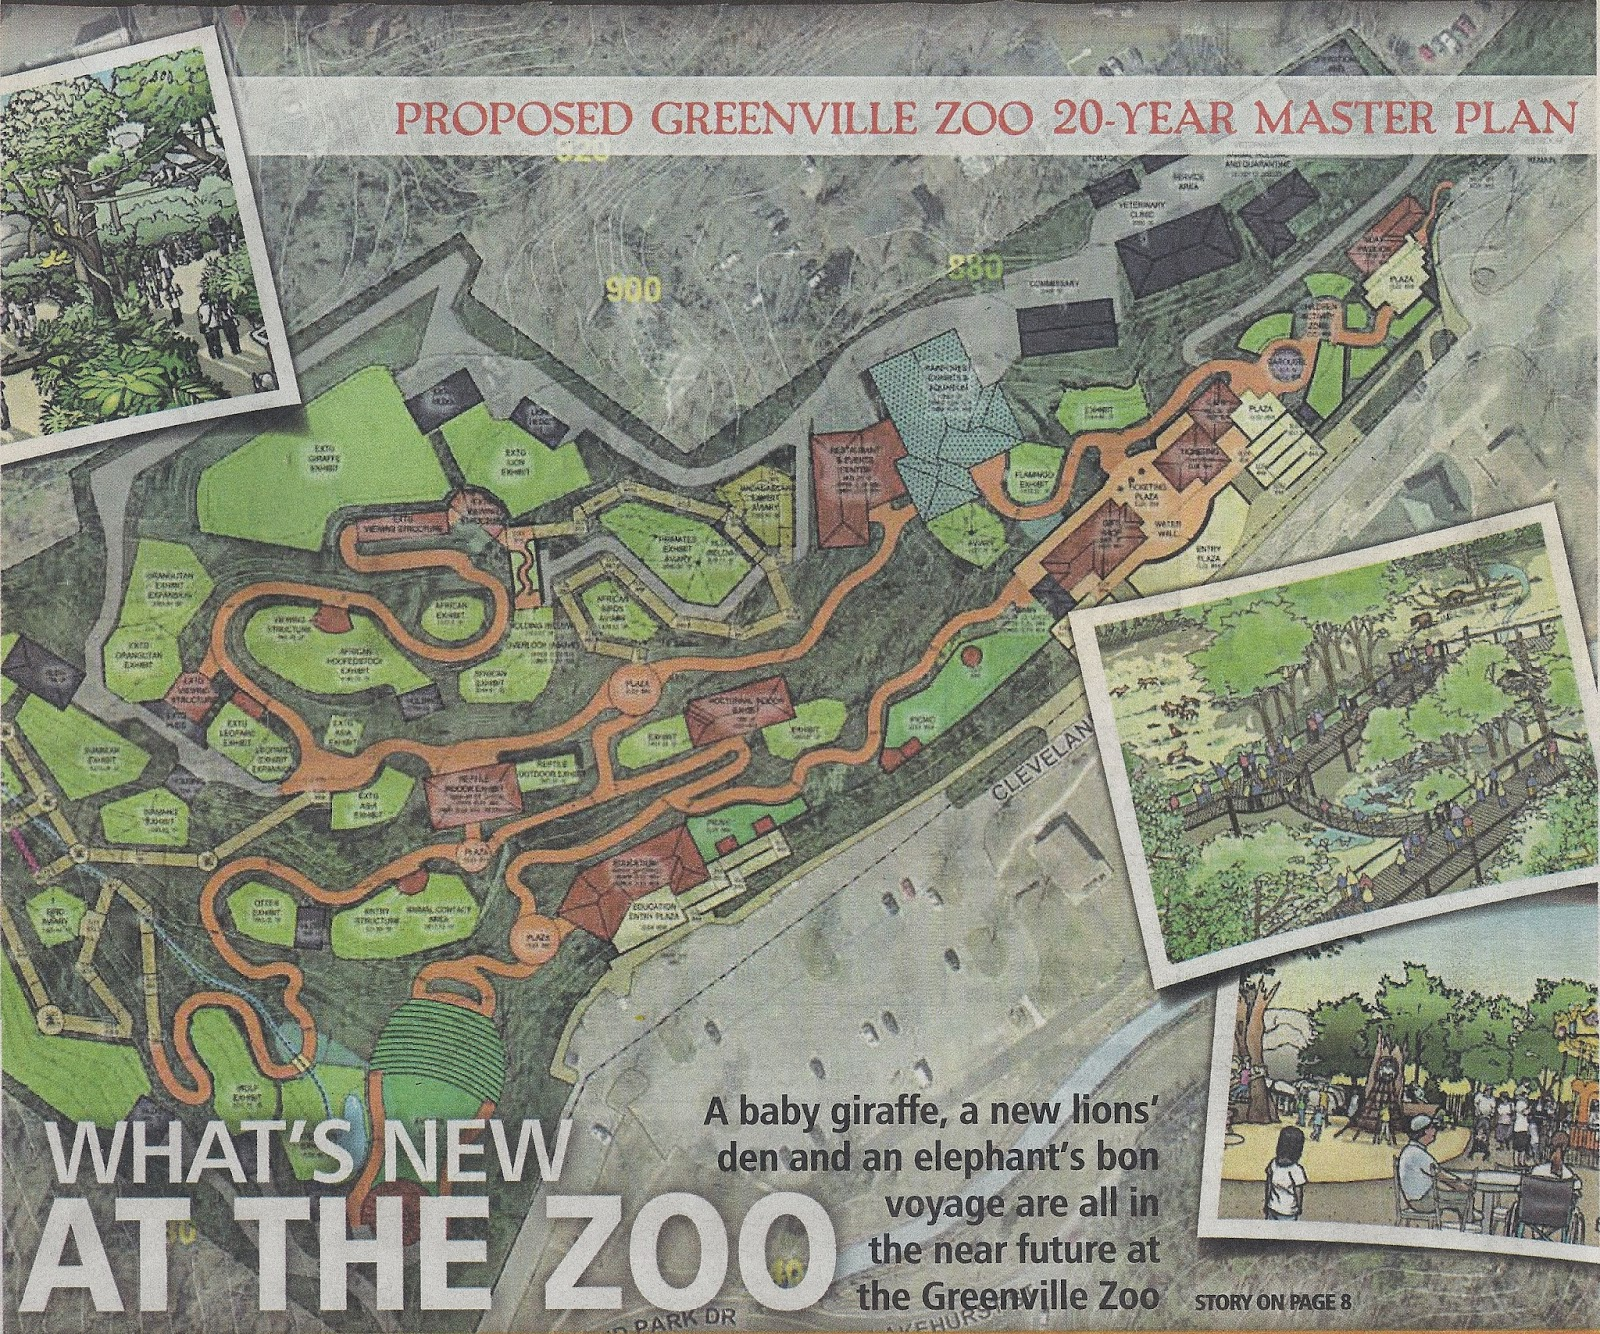 Femme au foyer: The best small zoo in America - the Greenville Zoo